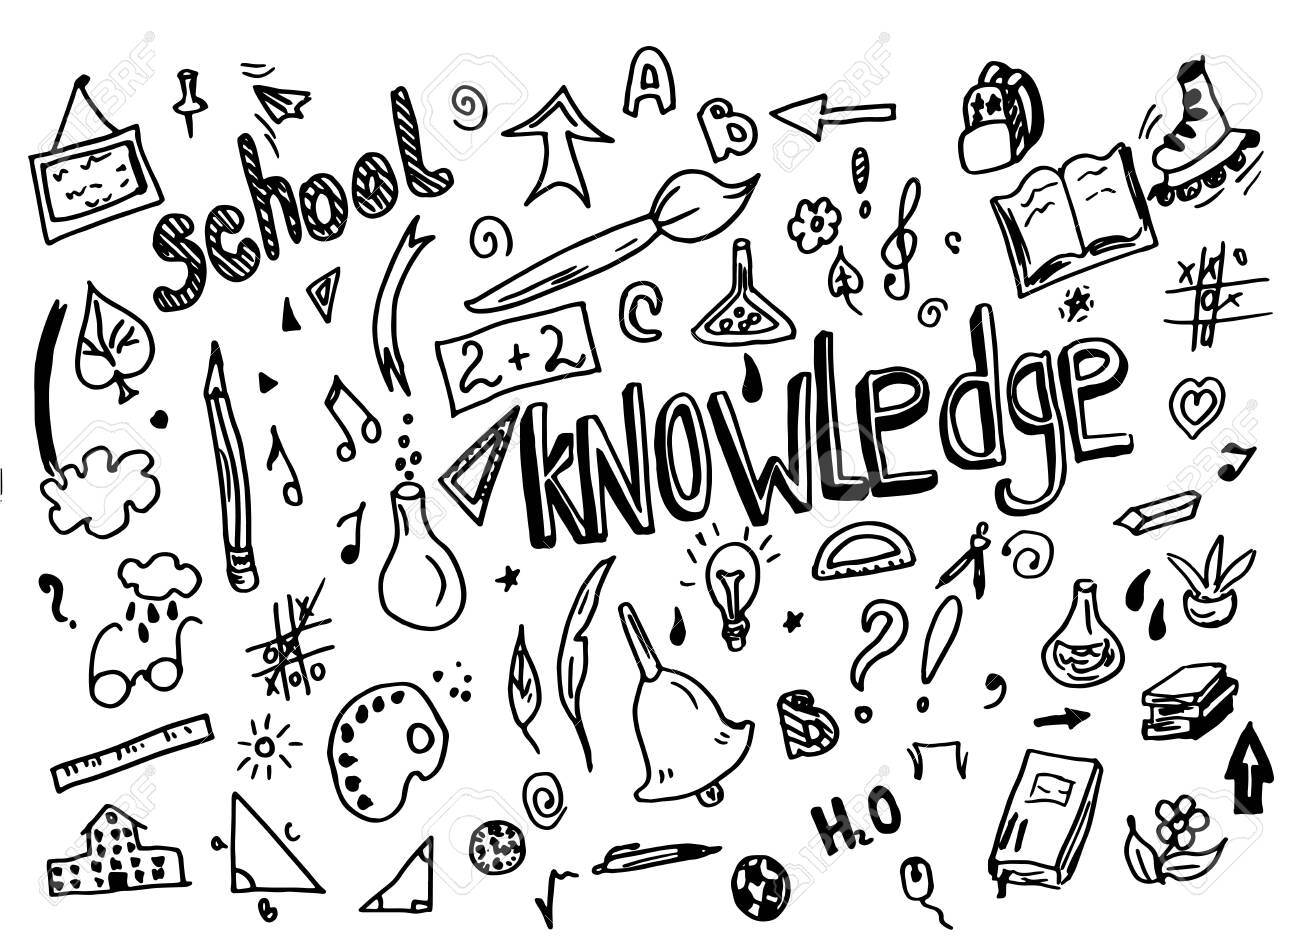 Sketchy vector School doodle hand drawn element with lettering school and knowledge light bulb, geometry triangle doodle cartoon - 150476297